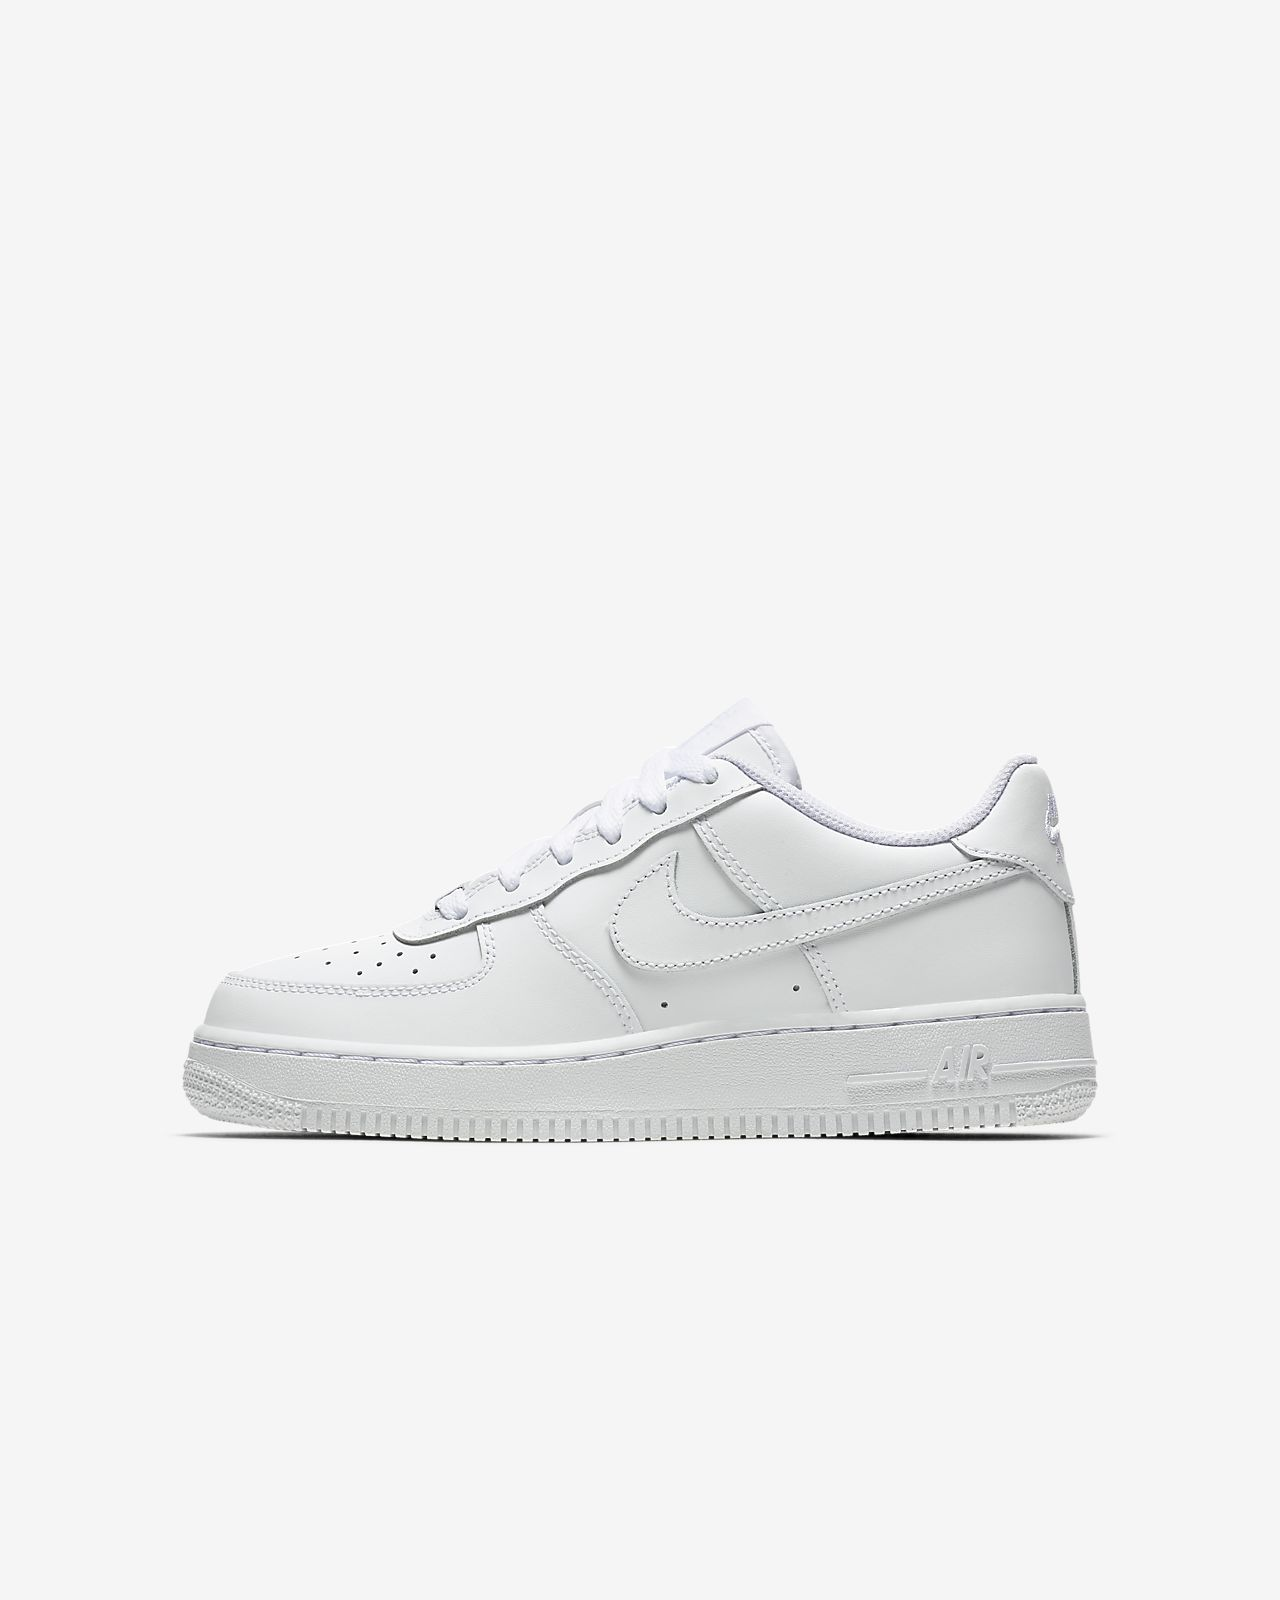 la moitié 088c9 cd857 Air Force 1 Nike : Nike Sneakers Online at Best Prices ...